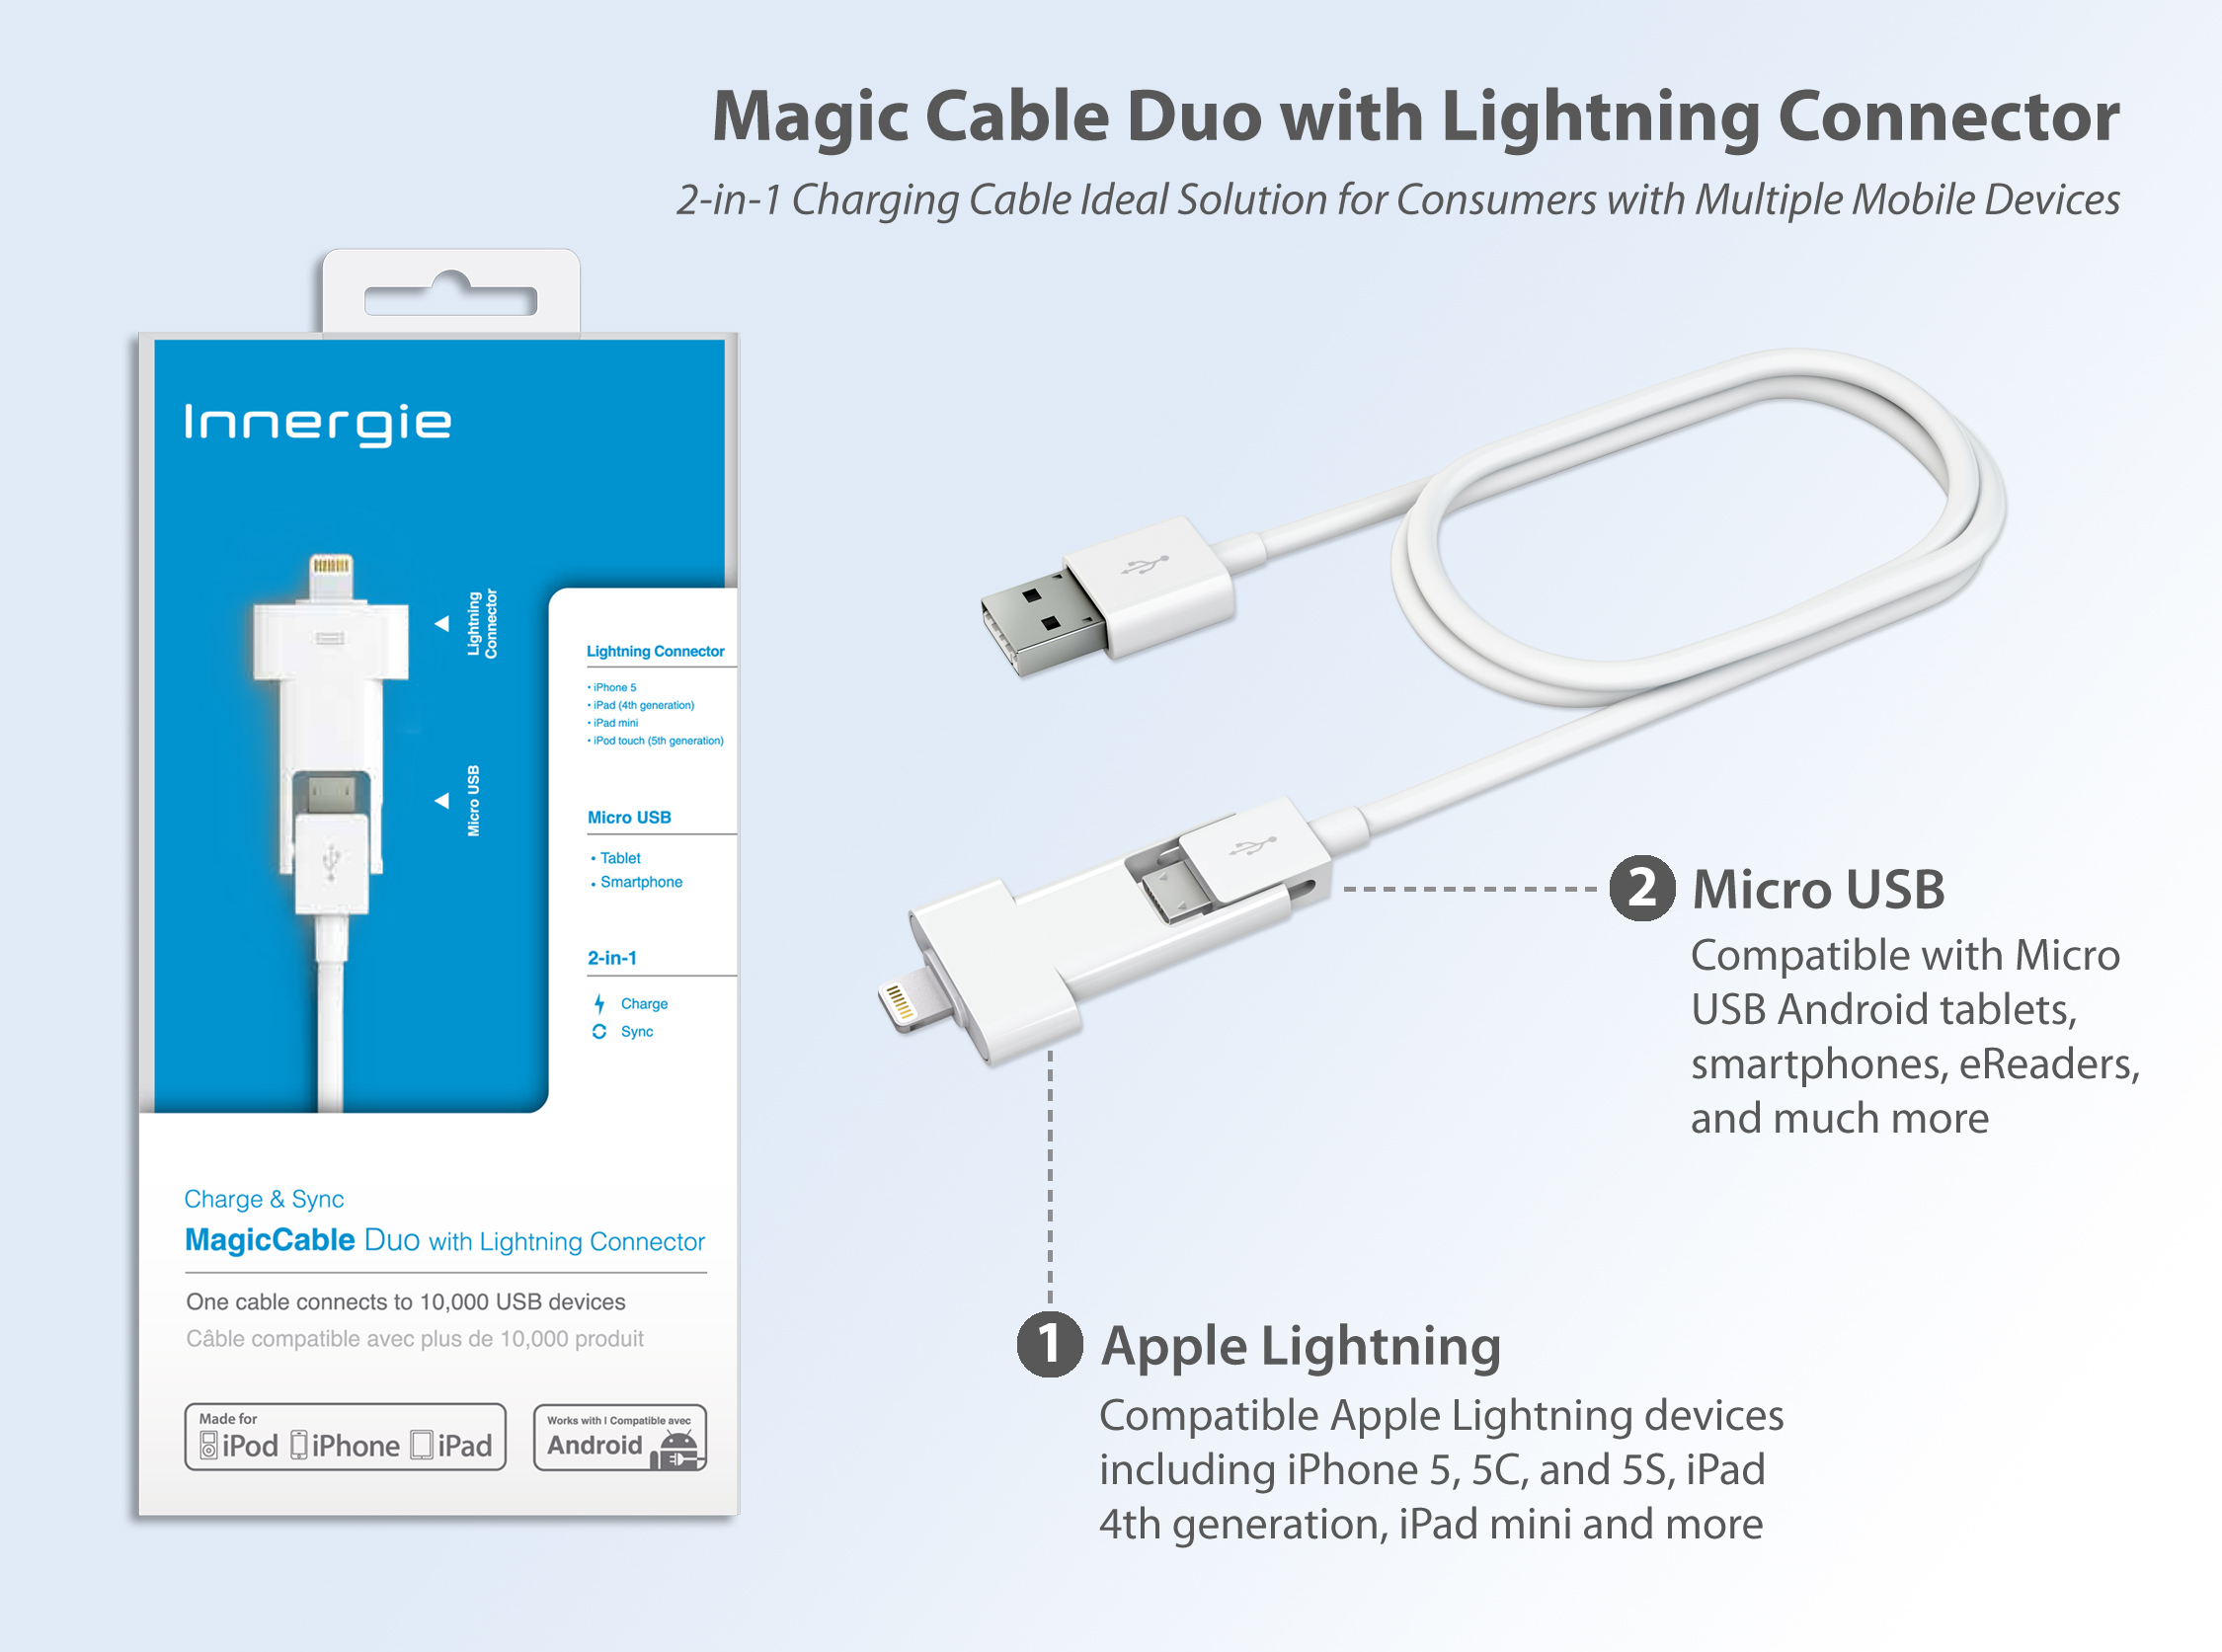 wiring diagram for apple lightning connector wiring innergie introduces magicable duo lightning connector for on wiring diagram for apple lightning connector